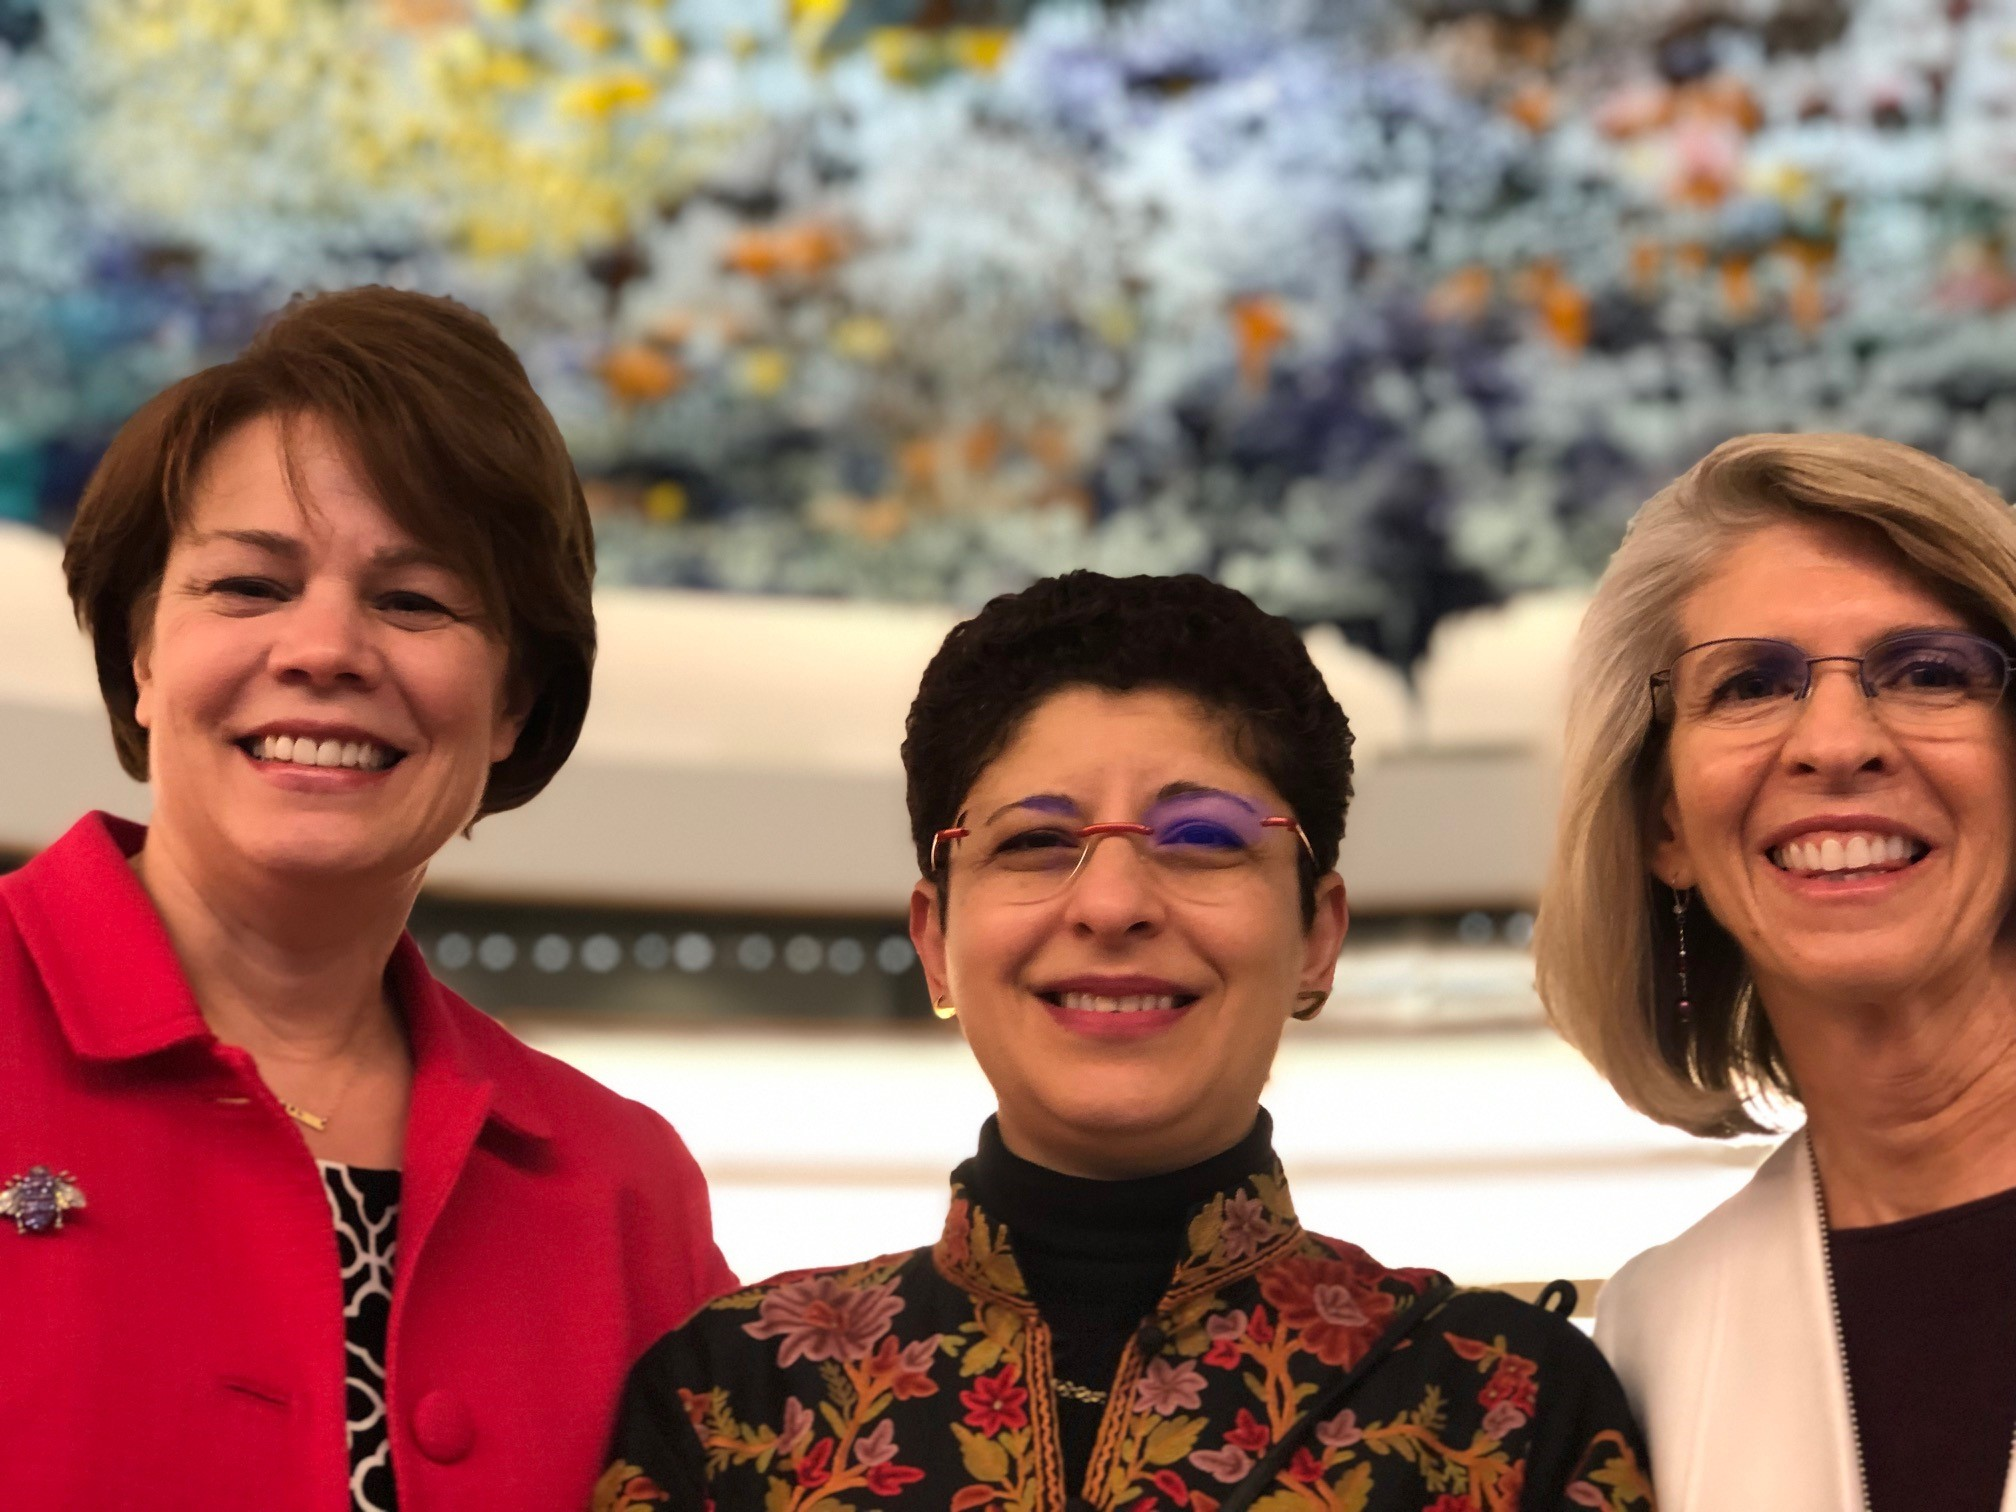 Sister Sharon Eubank, left, director of LDS Charities and first counselor in the Relief Society general presidency, spoke at the United Nations in Geneva, Switzerland, Monday, April 29, 2019. Also pictured are Dr. Azza Karam, center, senior advisor on culture, United Nations Population Fund, and Sister Carol F. McConkie, right, Church representative to the United Nations.